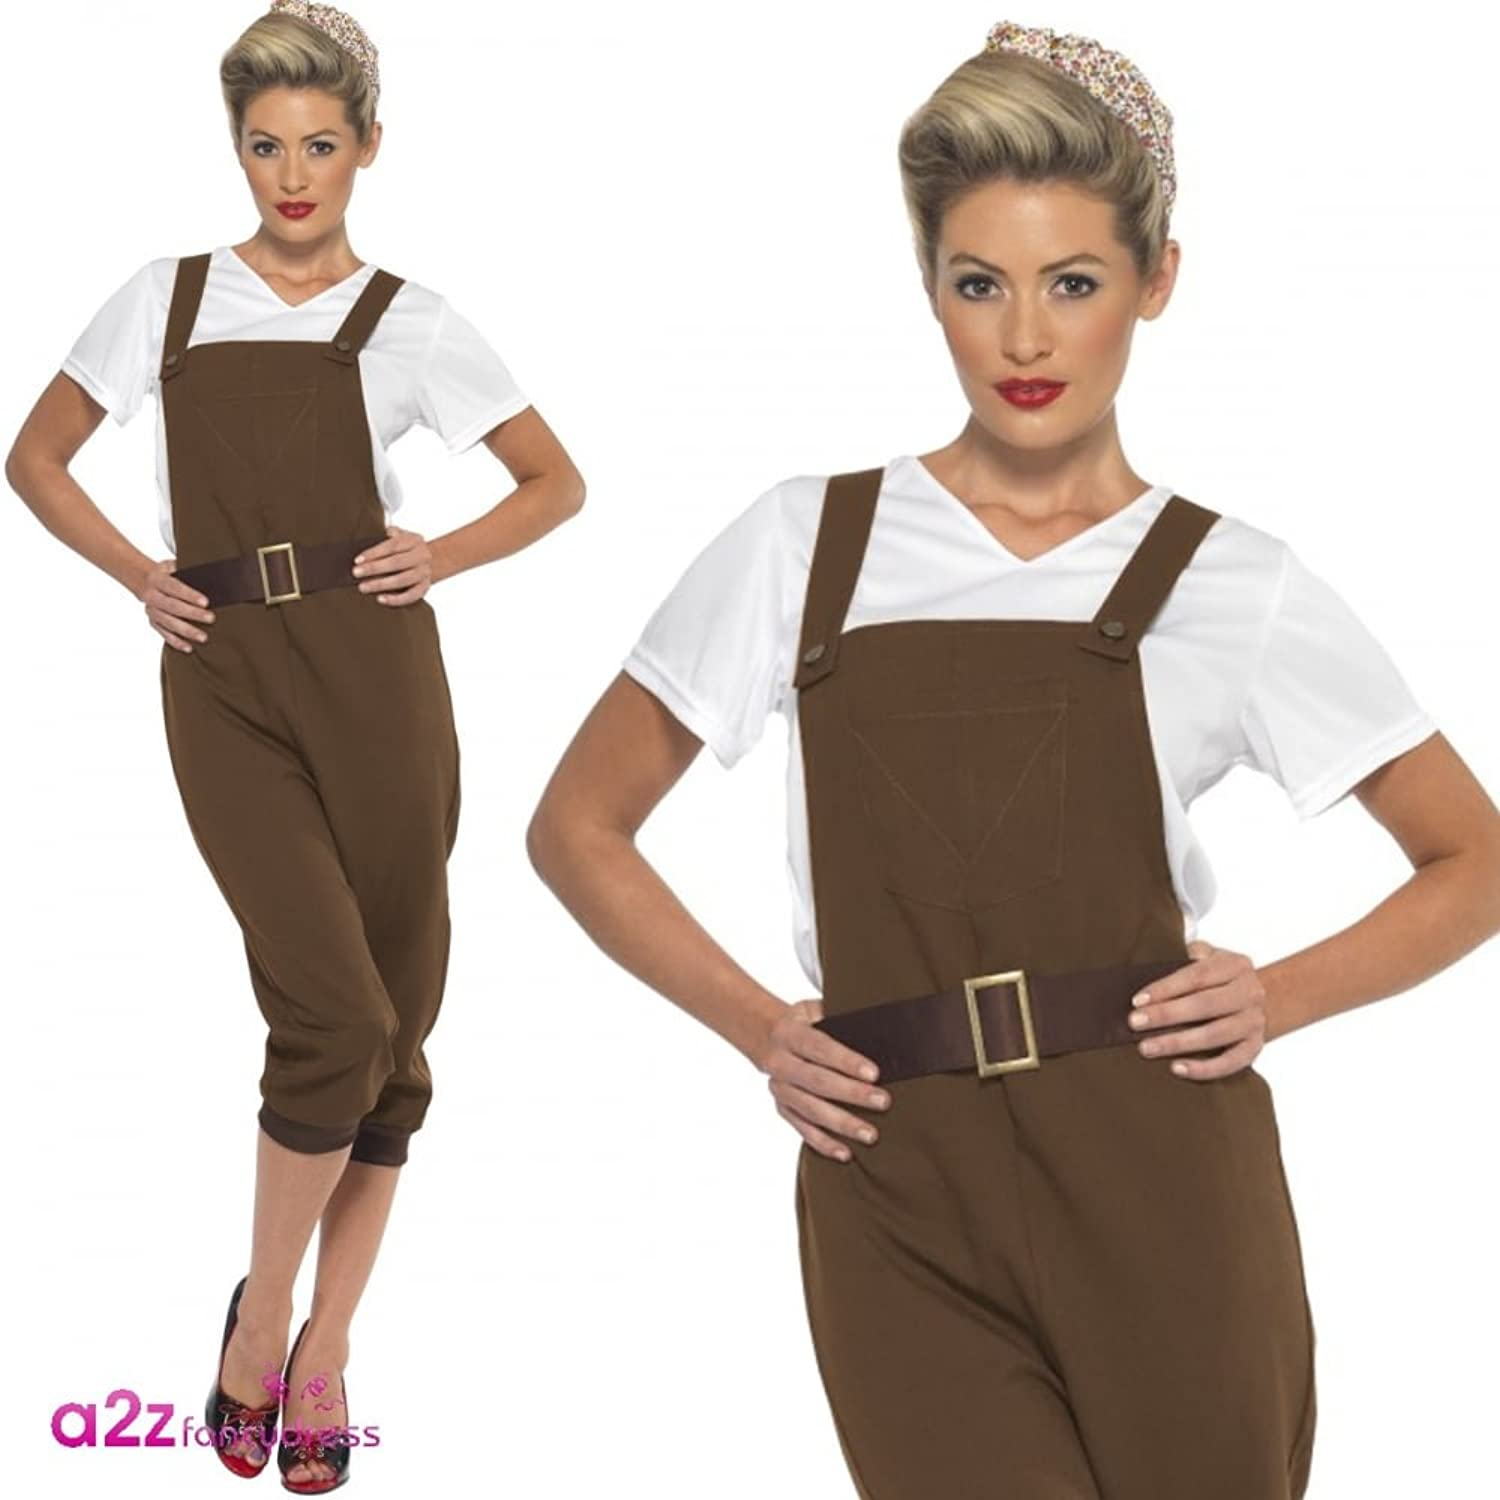 Rosie the Riveter Costume & Outfit Ideas Smiffys Womens Ww2 Land Girl Costume $38.15 AT vintagedancer.com